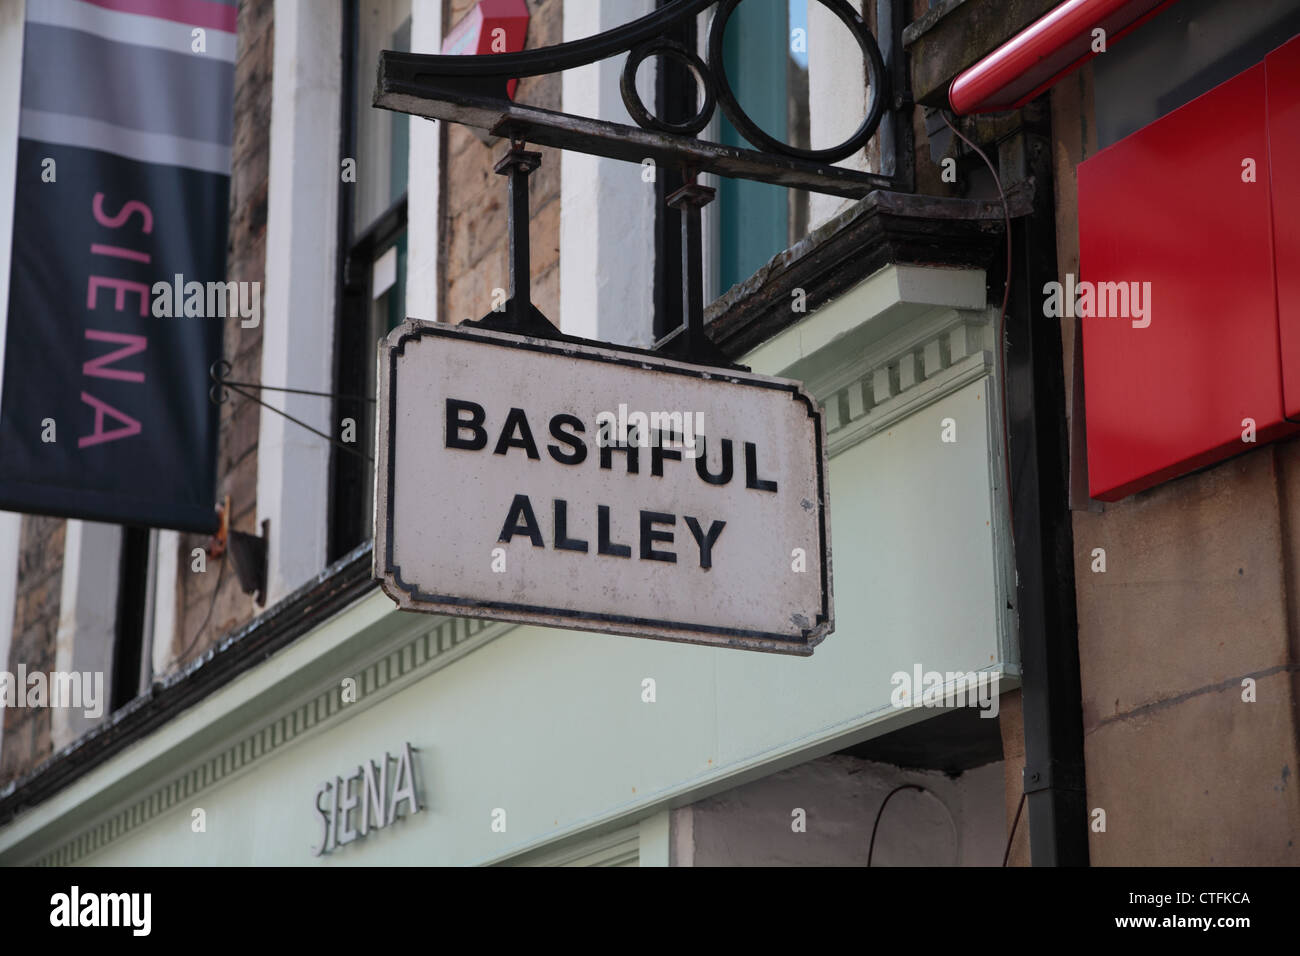 Panneau 'Bashful Alley' on city street Photo Stock